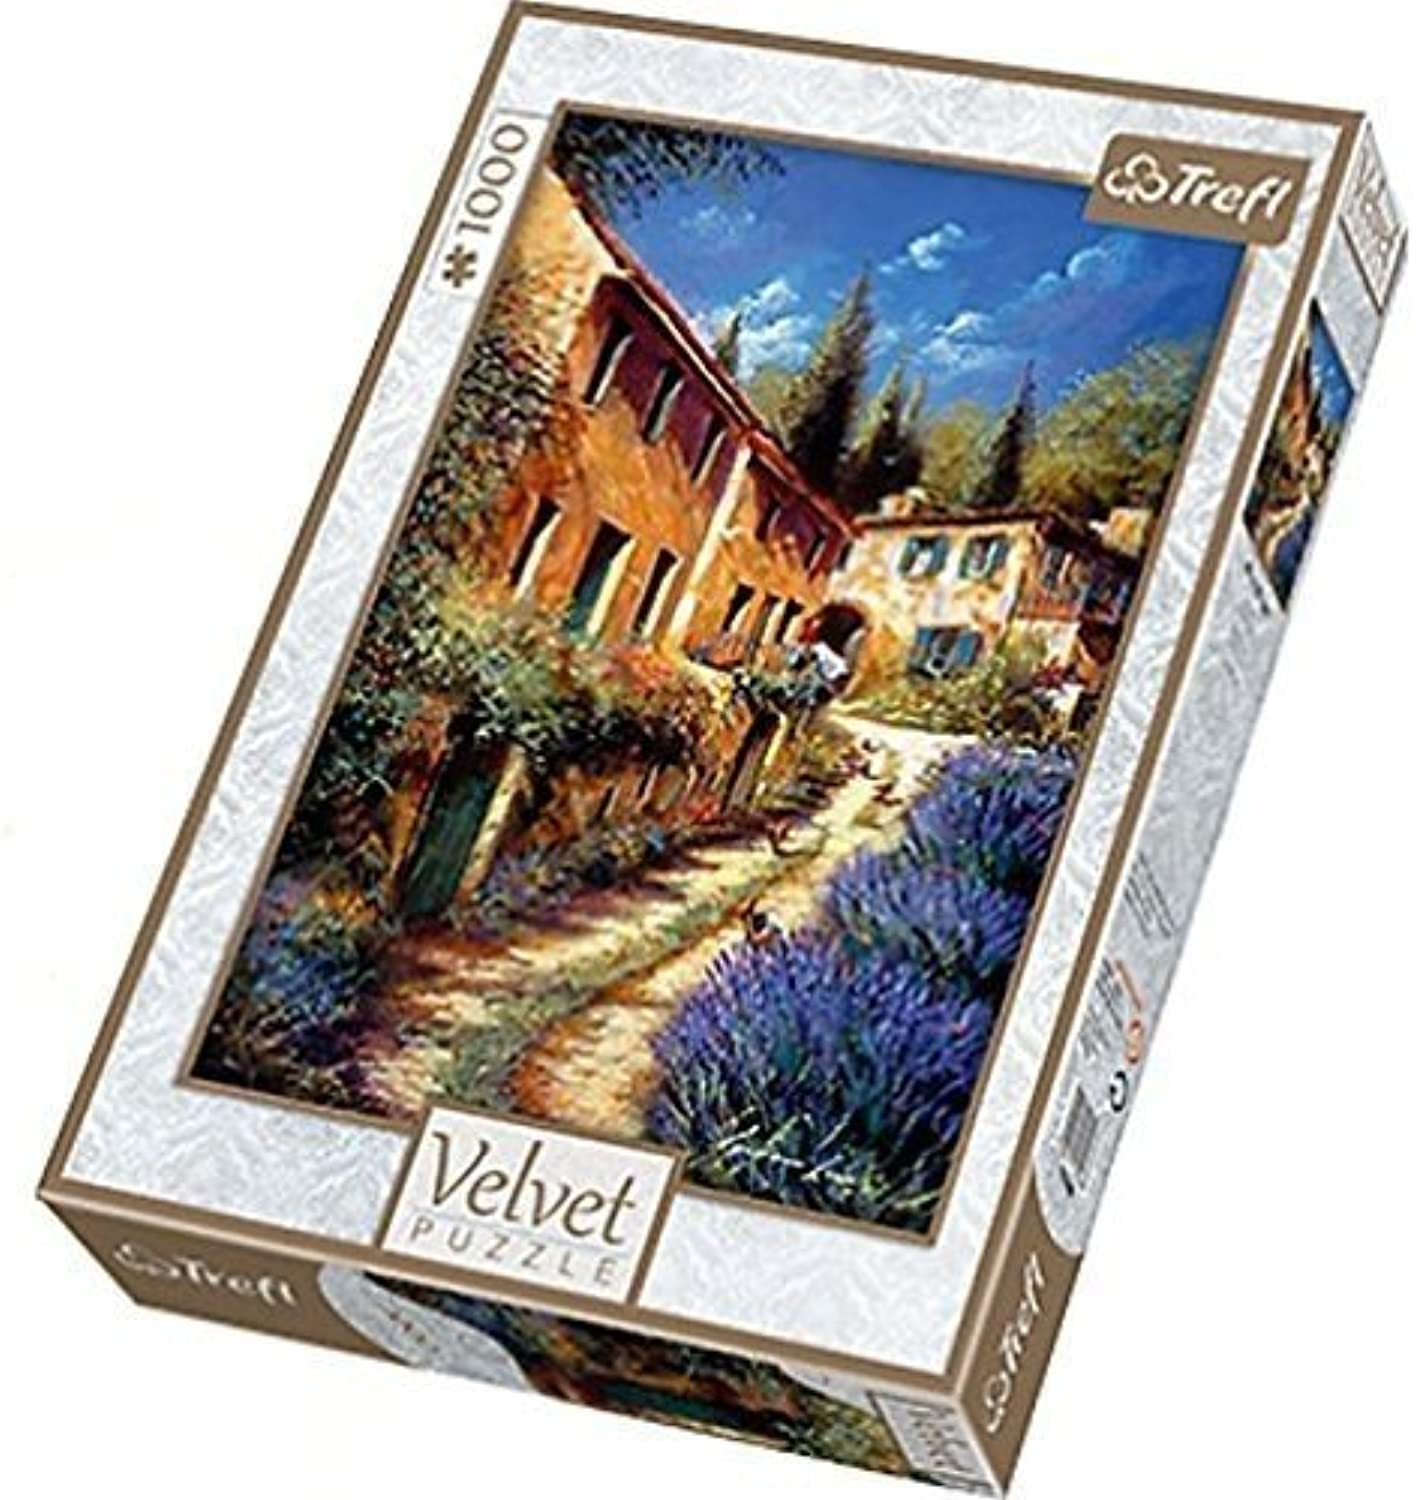 Trefl Up the Lane Velvet Puzzle (1000 Pieces) by Trefl